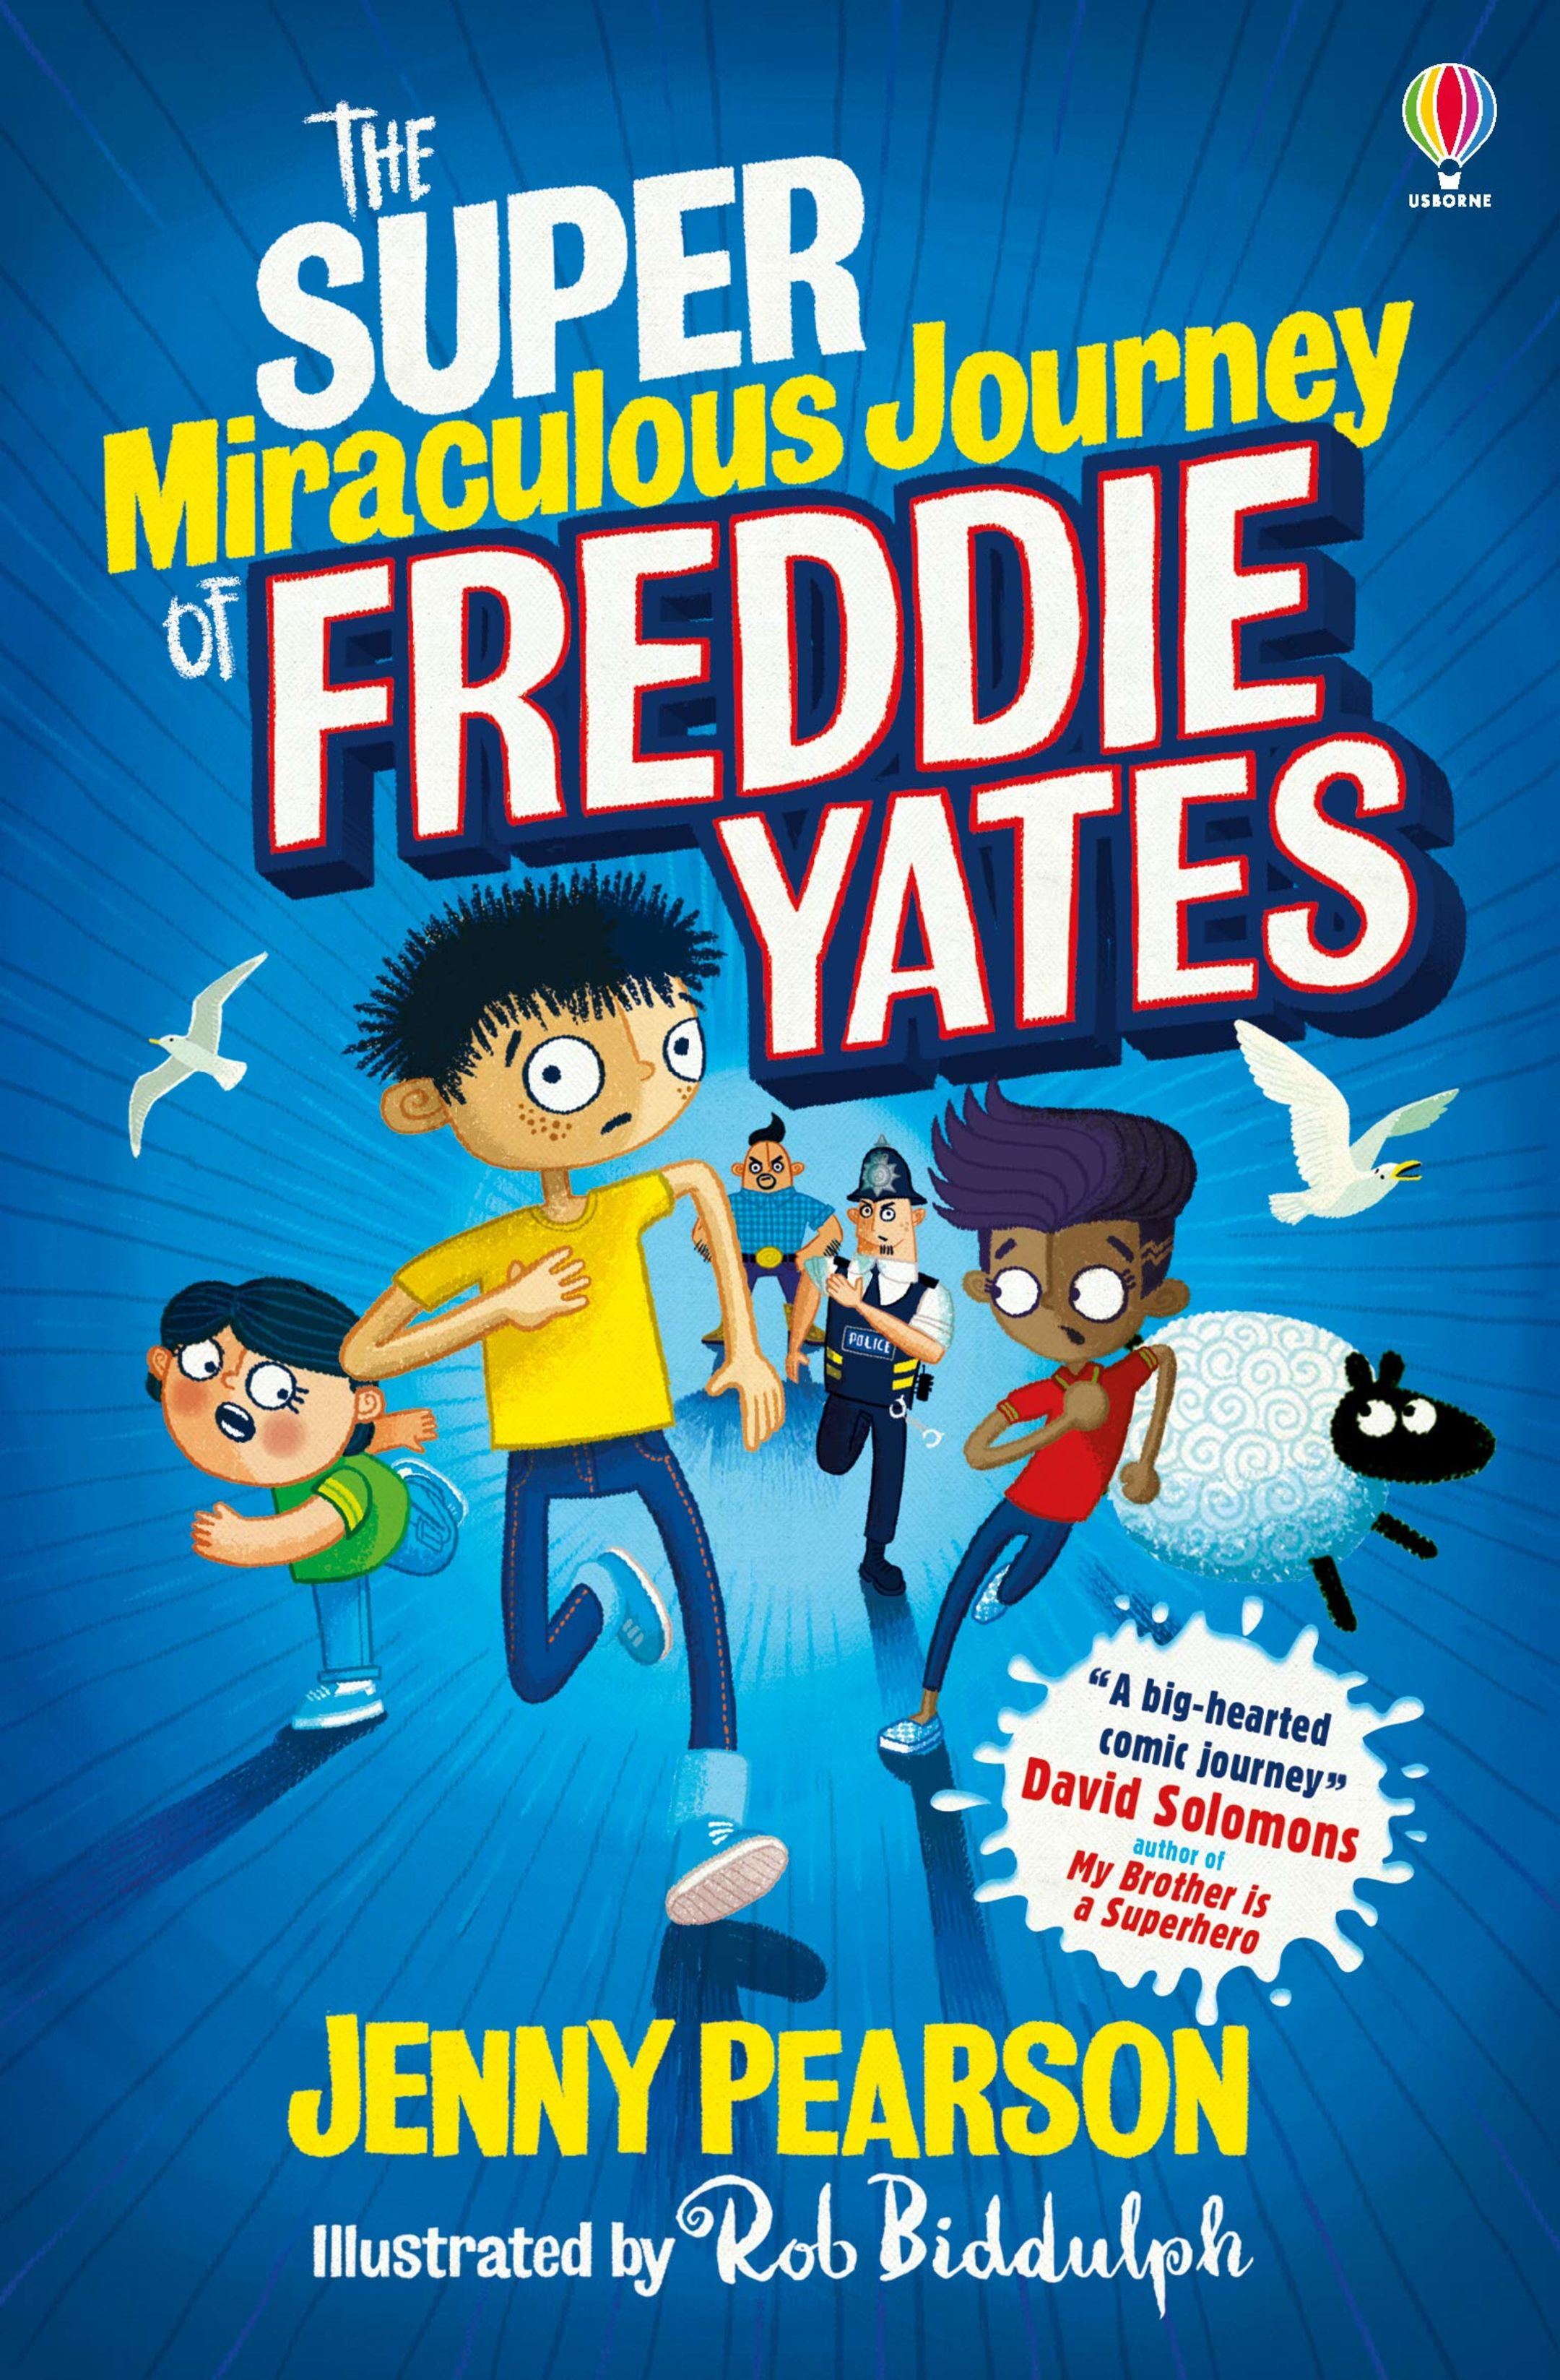 The book cover of The Super Miraculous Journey of Freddie Yates, by Jenny Pearson